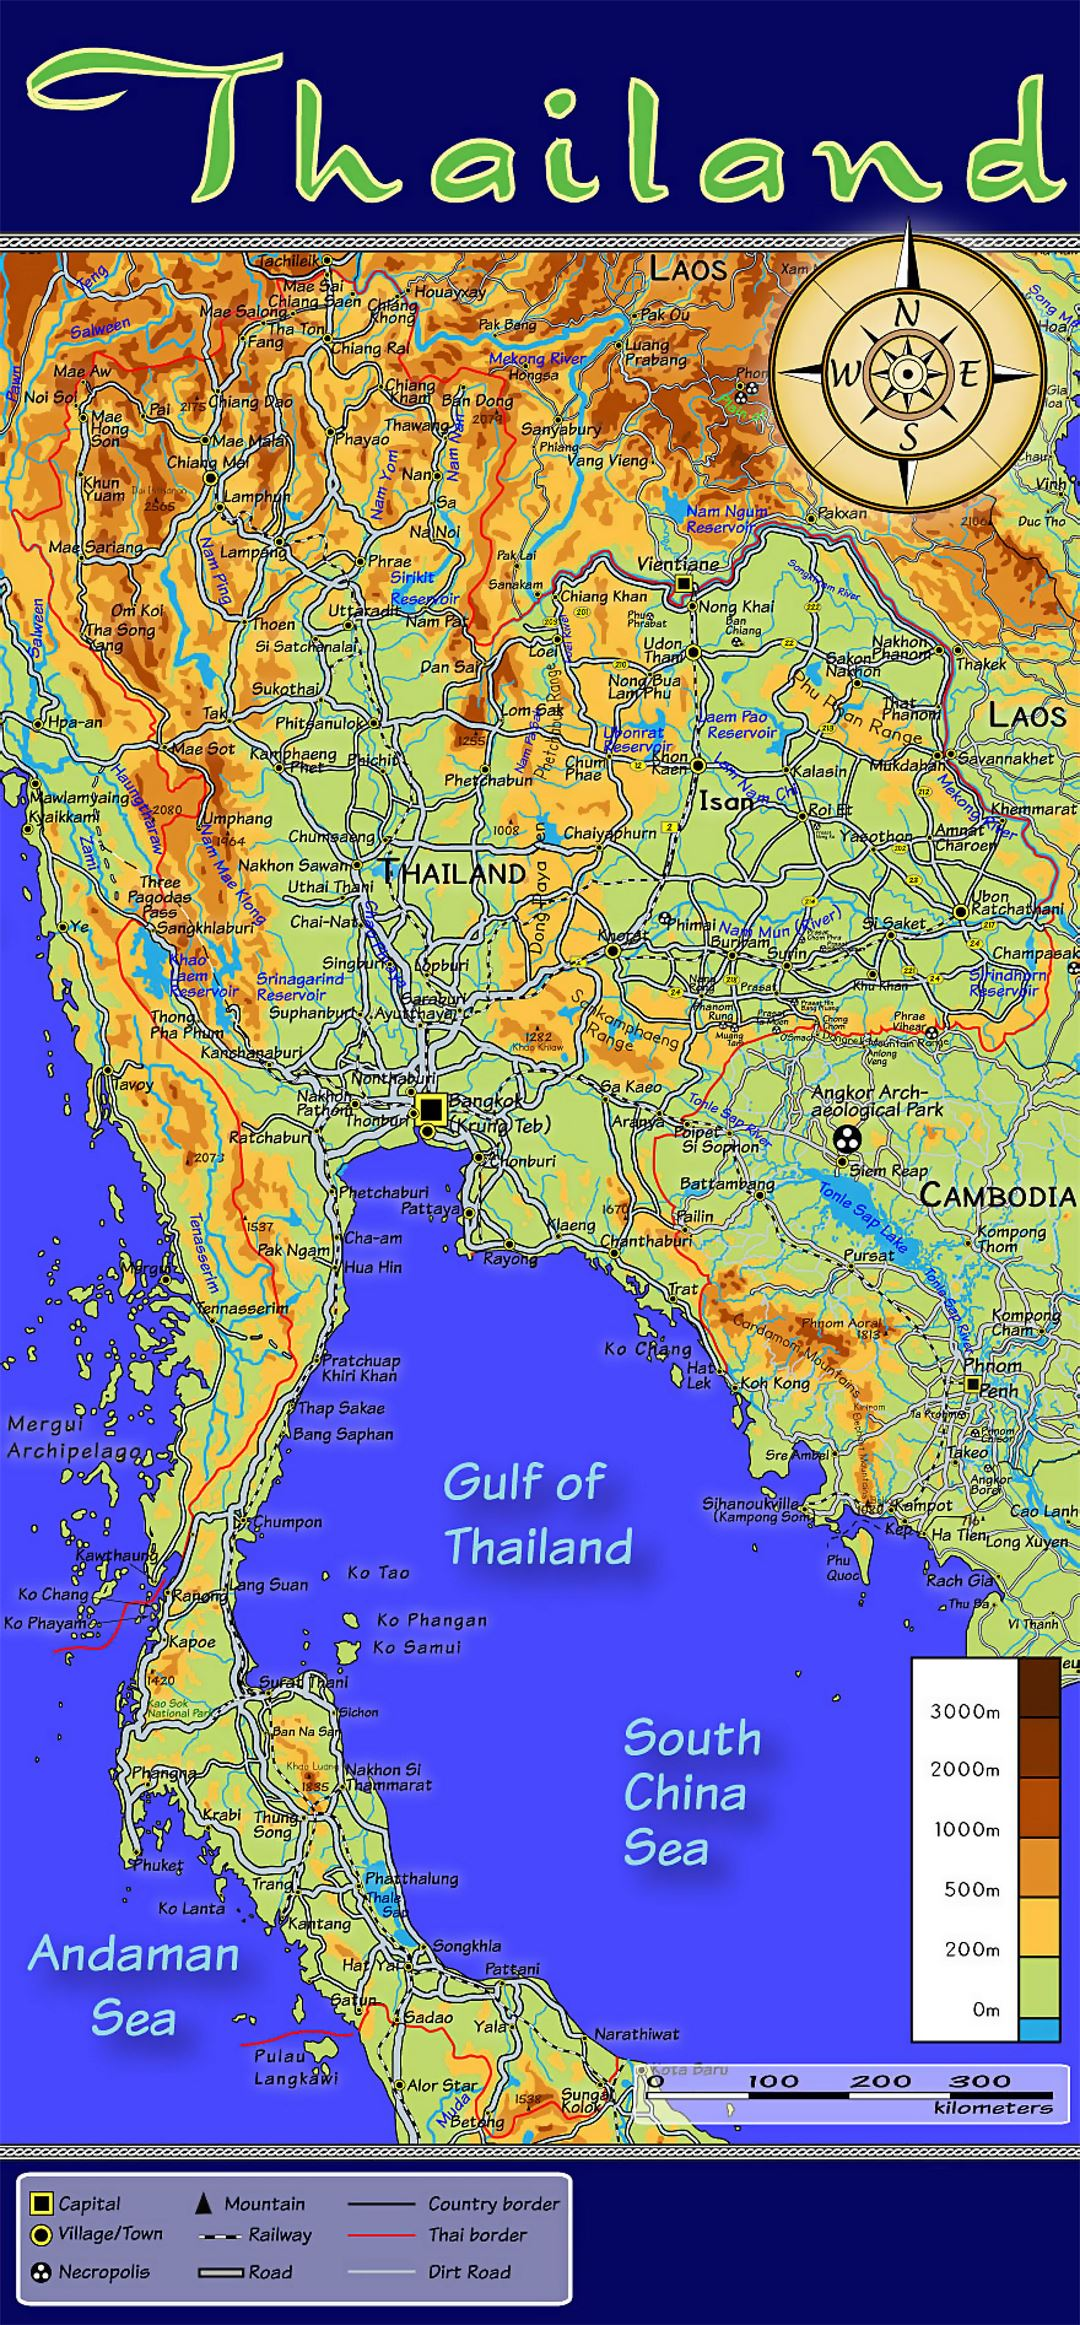 Thailand Topographic Map.Detailed Topographic Map Of Thailand With Other Marks Thailand